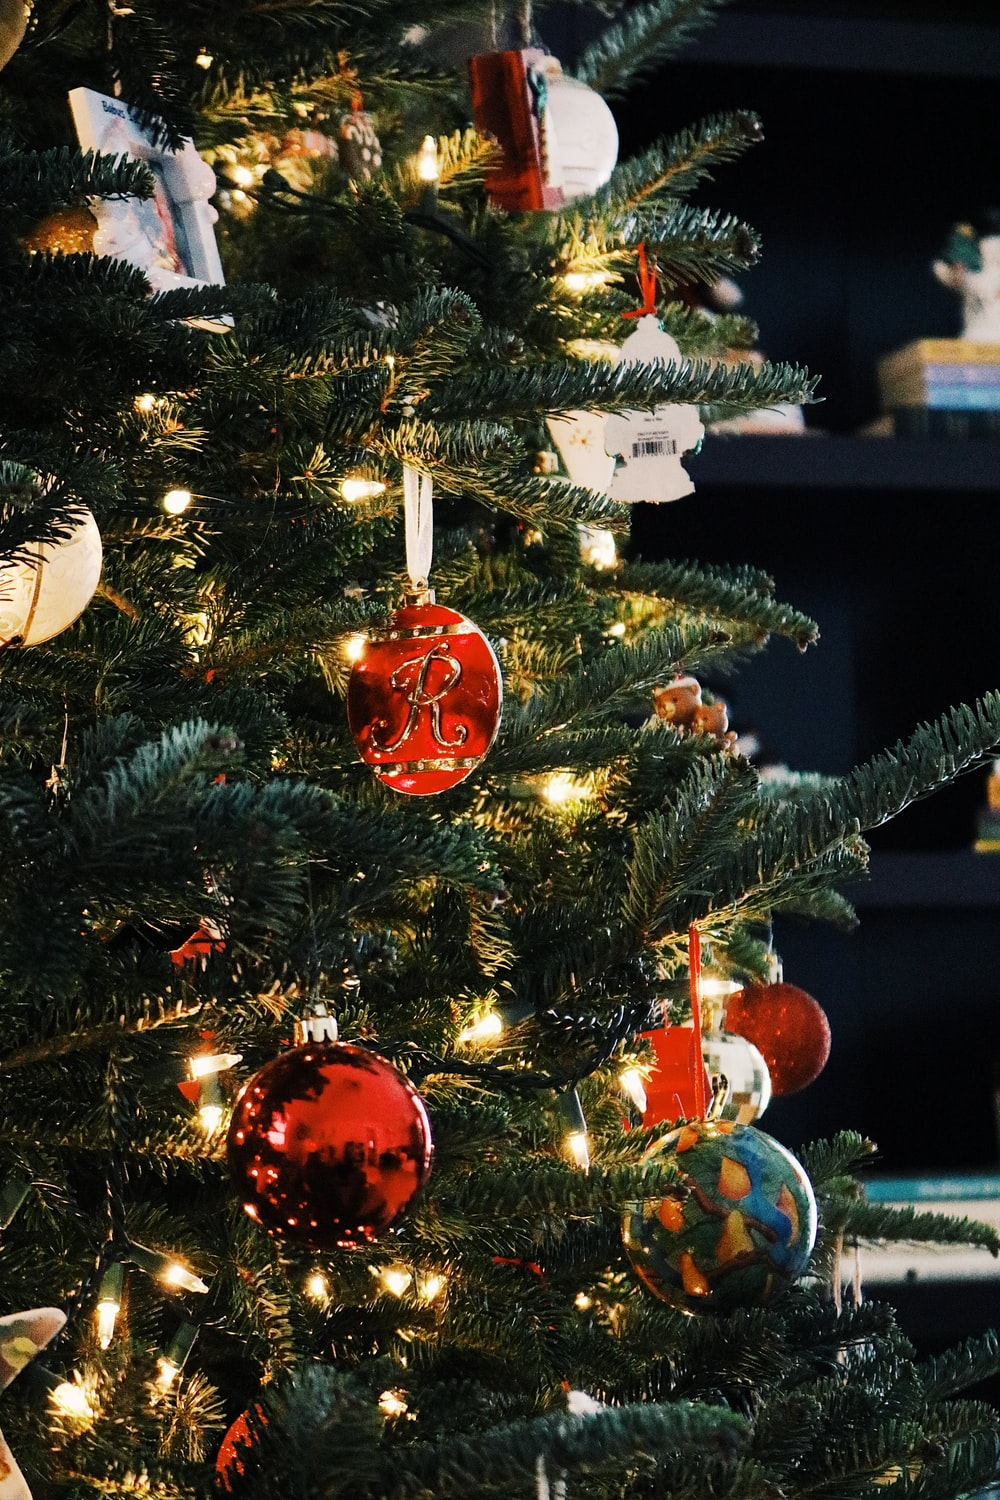 baubles hung on Christmas tree